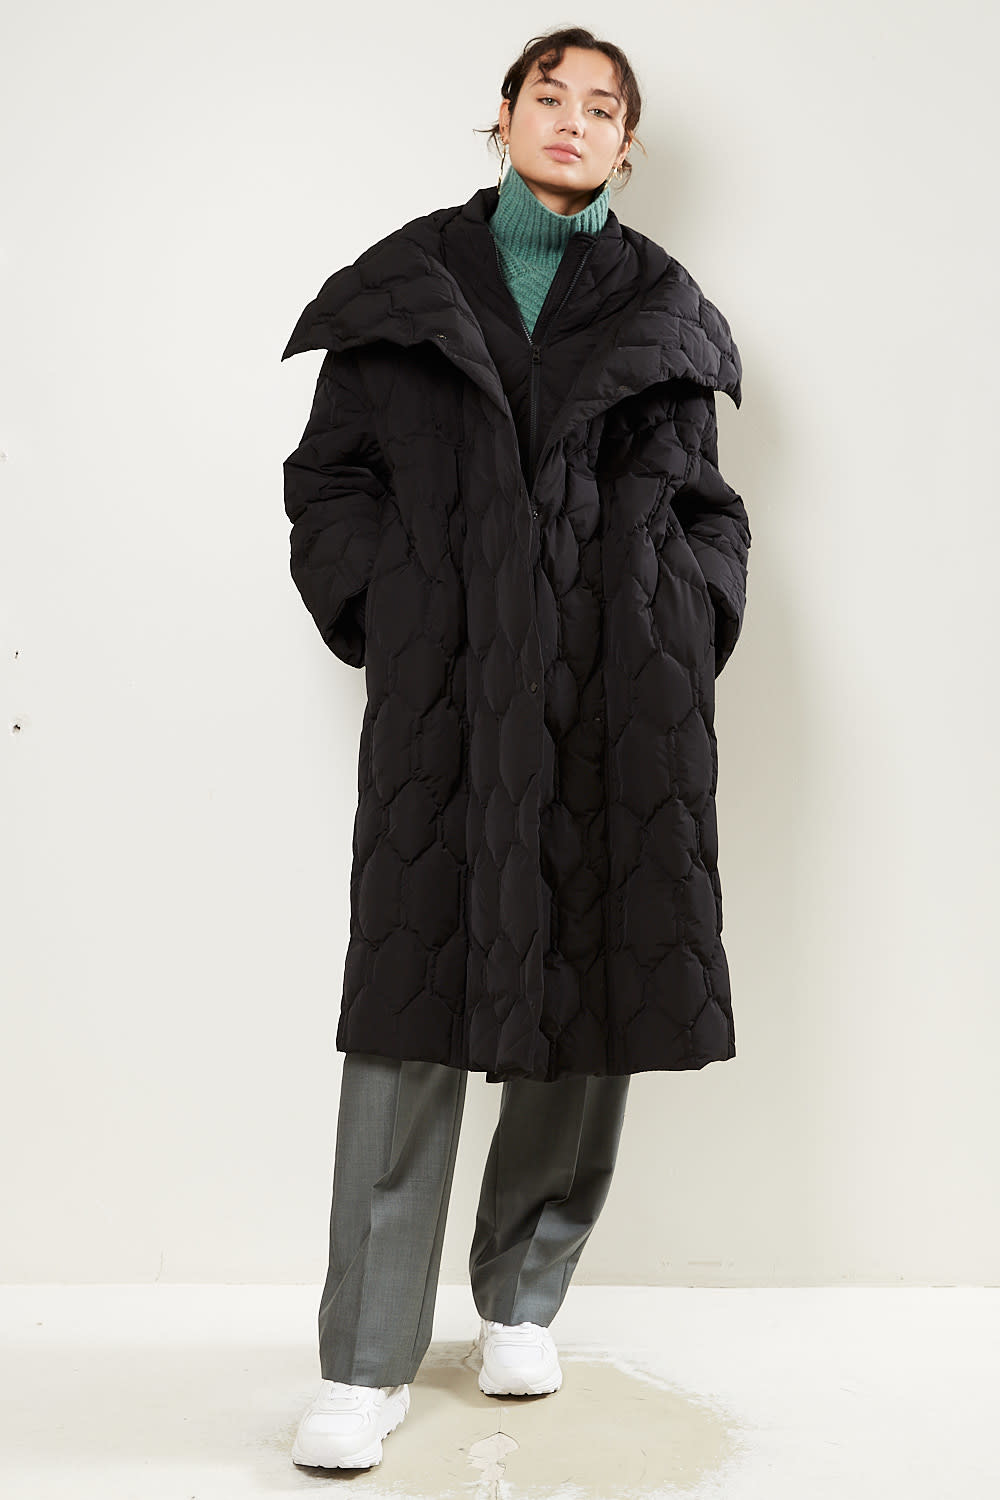 Christian Wijnants - Cawil oversized quilted coat